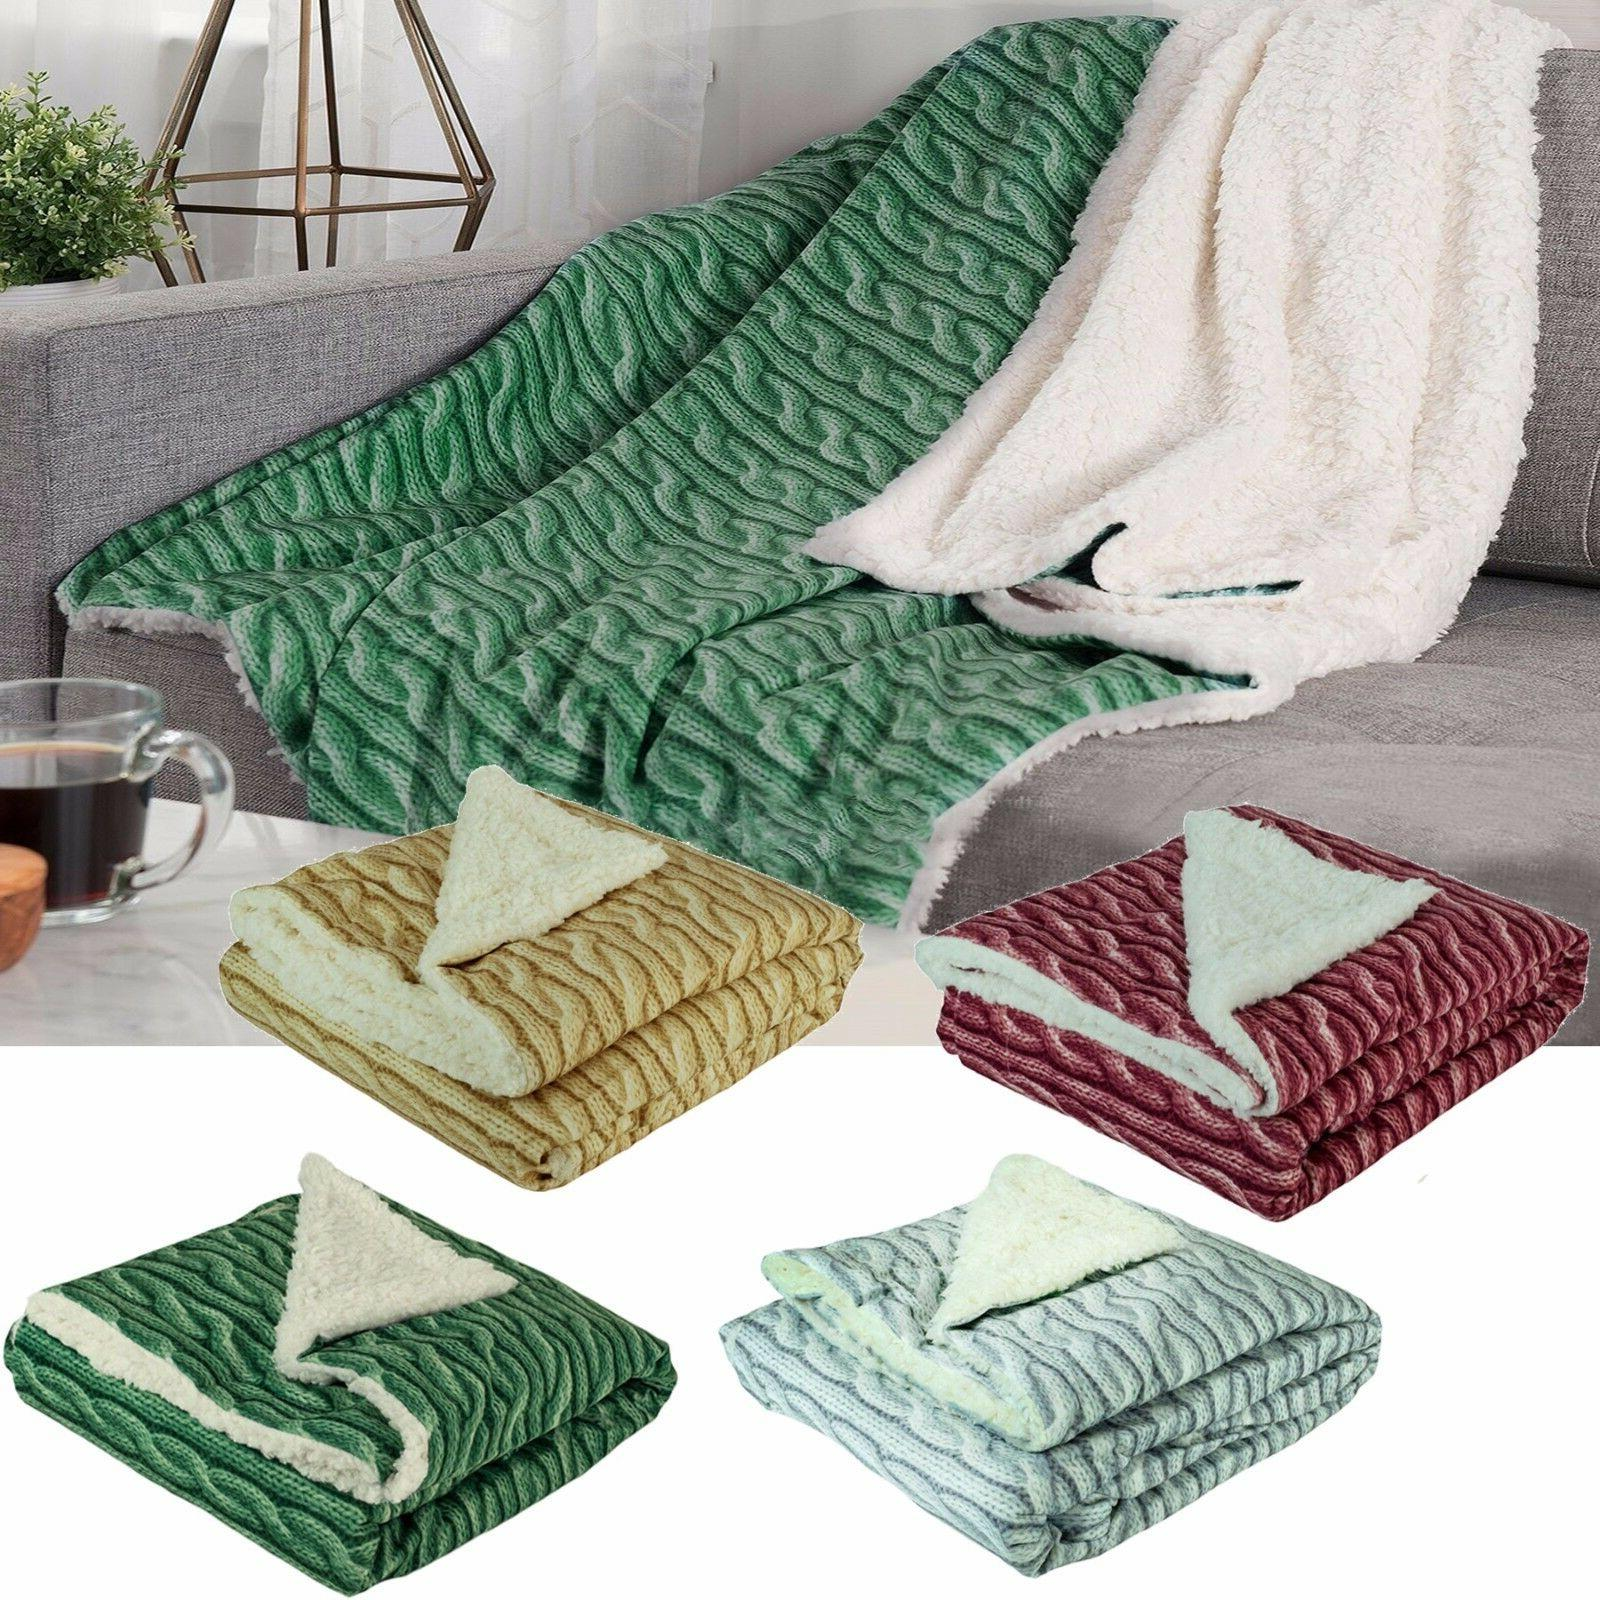 Christmas Holiday Throw Blanket Gift Cable Knit Design Fleec